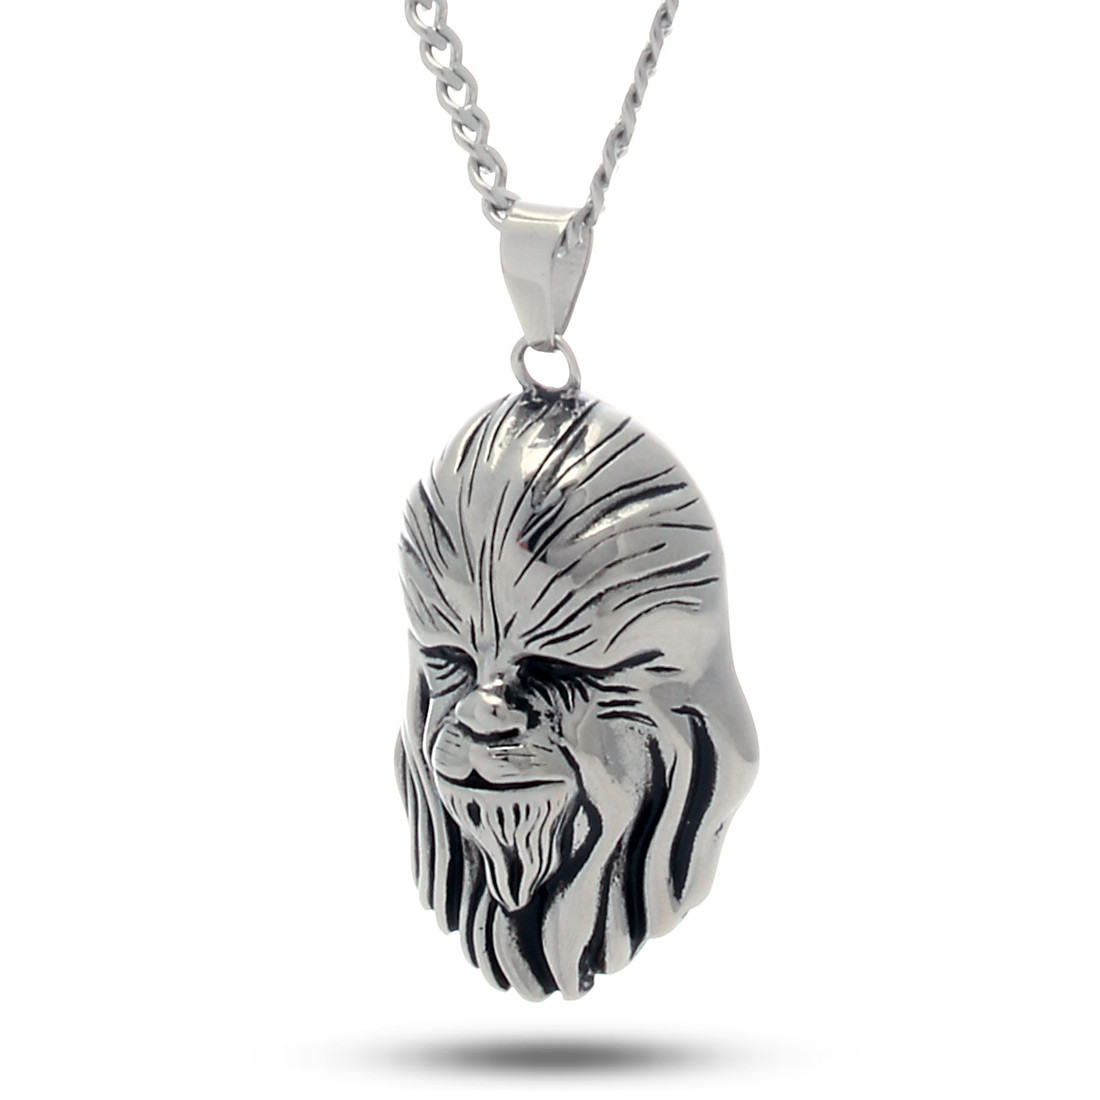 Nkx11336 stainless steel chewbacca necklace